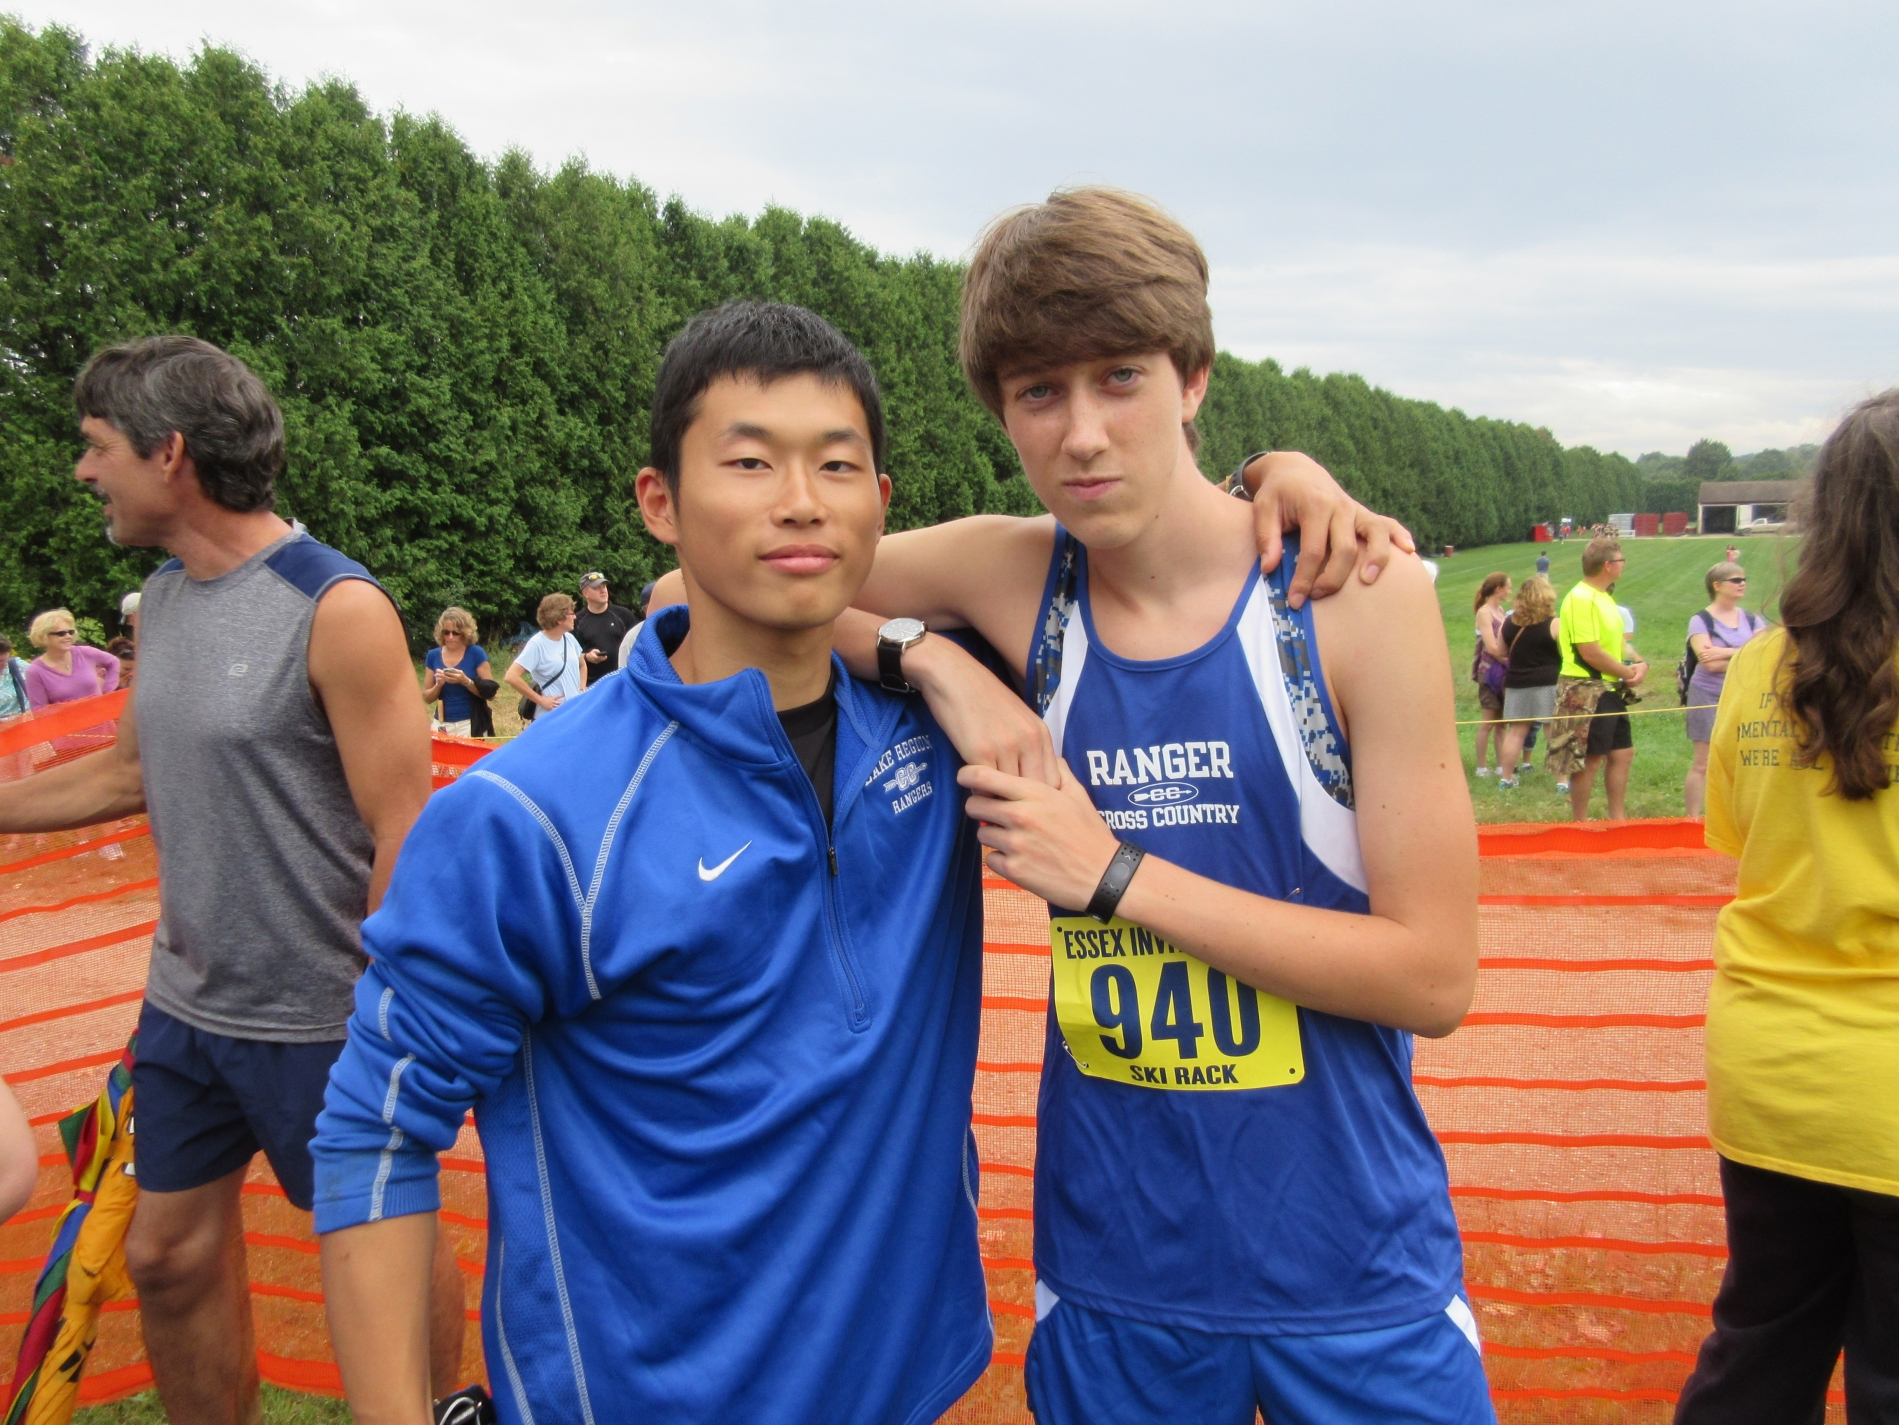 PAX Student from Japan with Cross Country Team Friend